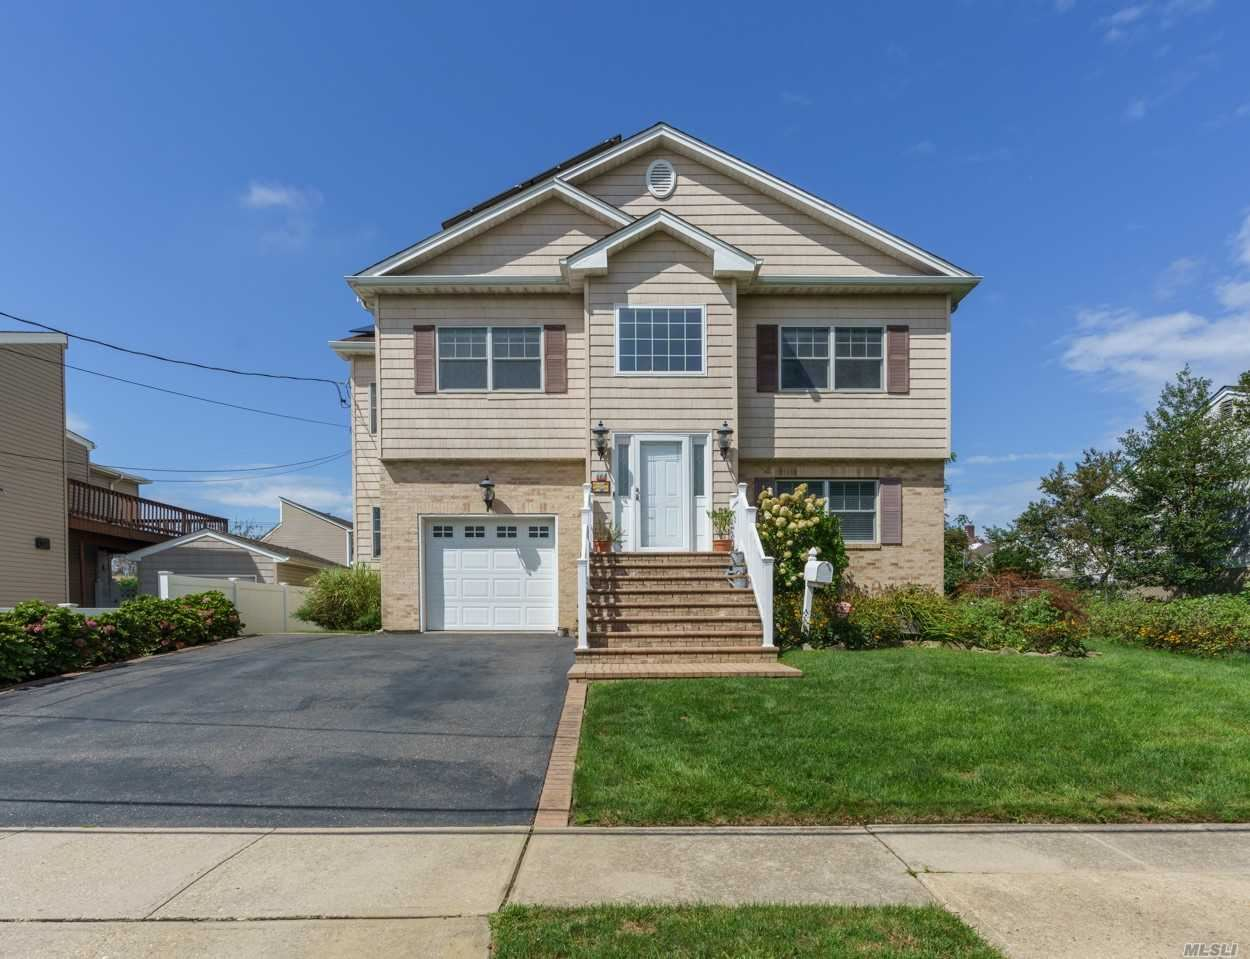 Photo of 2469 Army Place, Bellmore, NY 11710 (MLS # 3247211)